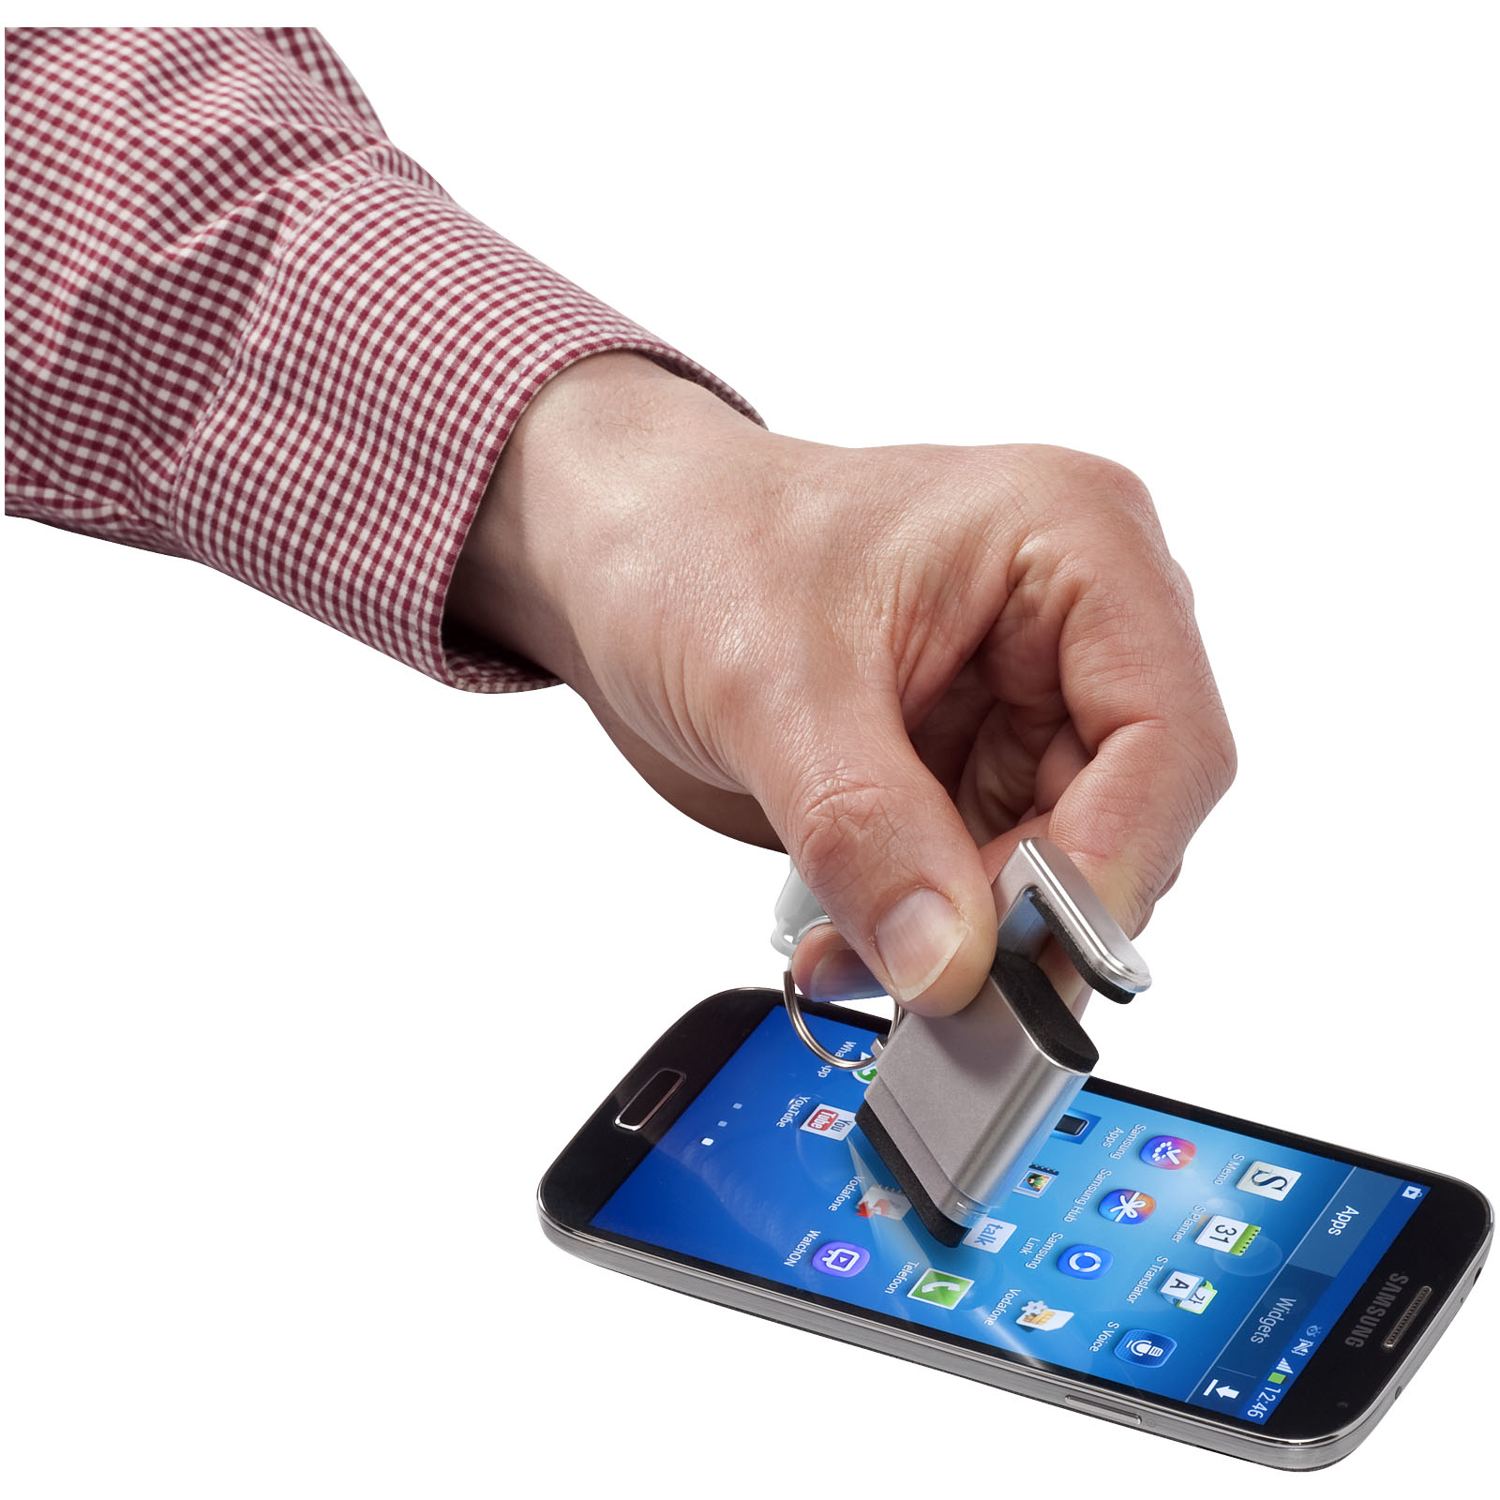 Gogo Screen Cleaner And Smartphone Holder